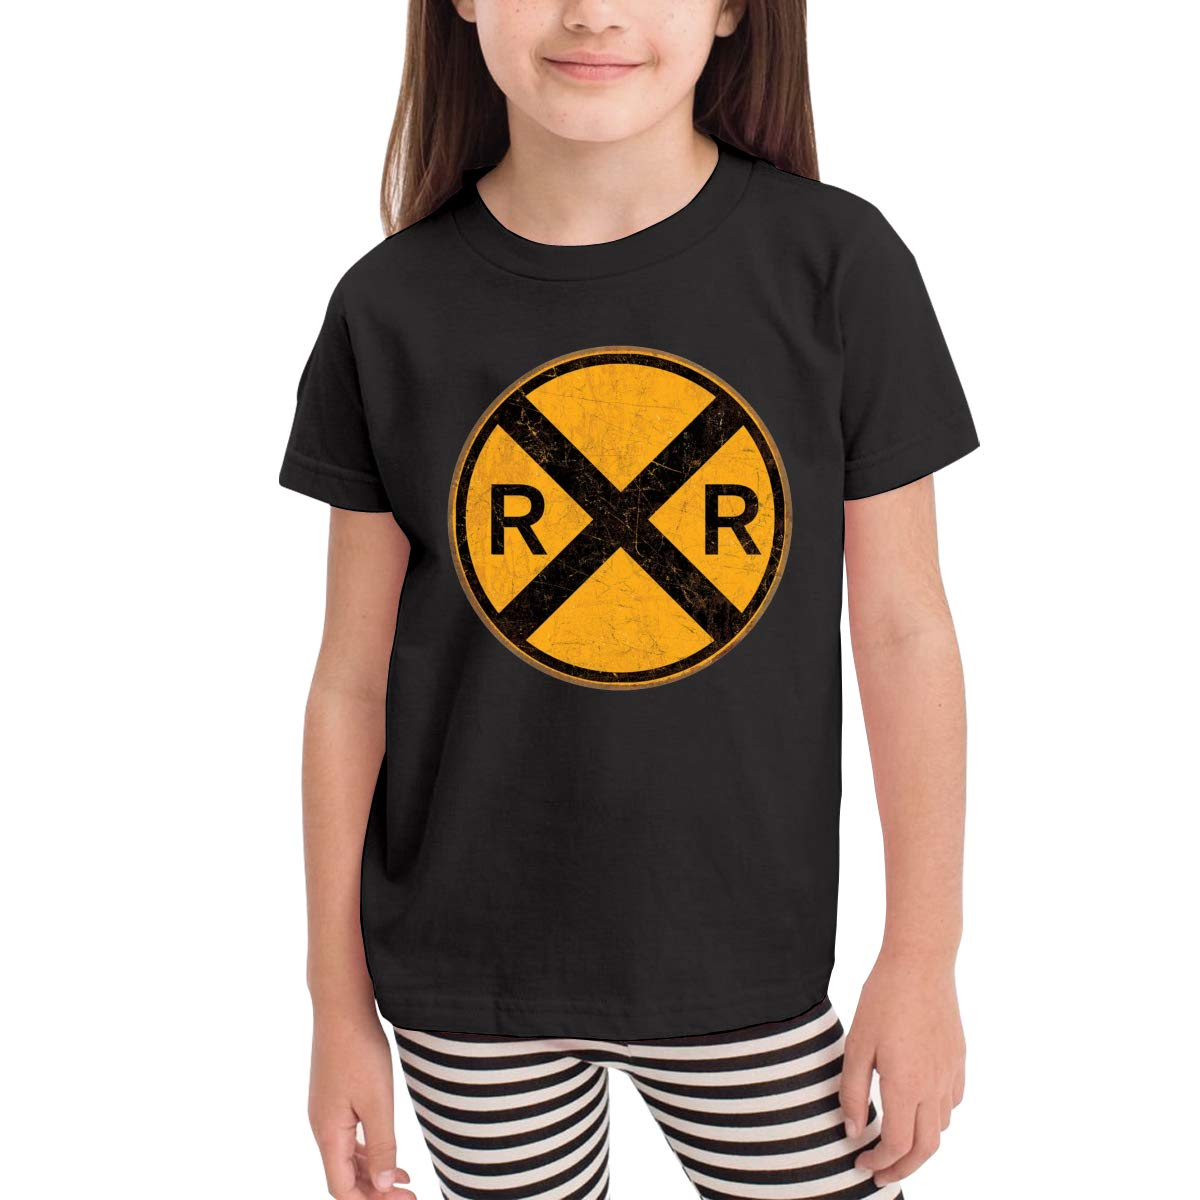 Vintage Style Railroad Crossing Round Metal Sign Kids Cotton T-Shirt Basic Soft Short Sleeve Tee Tops for Baby Boys Girls